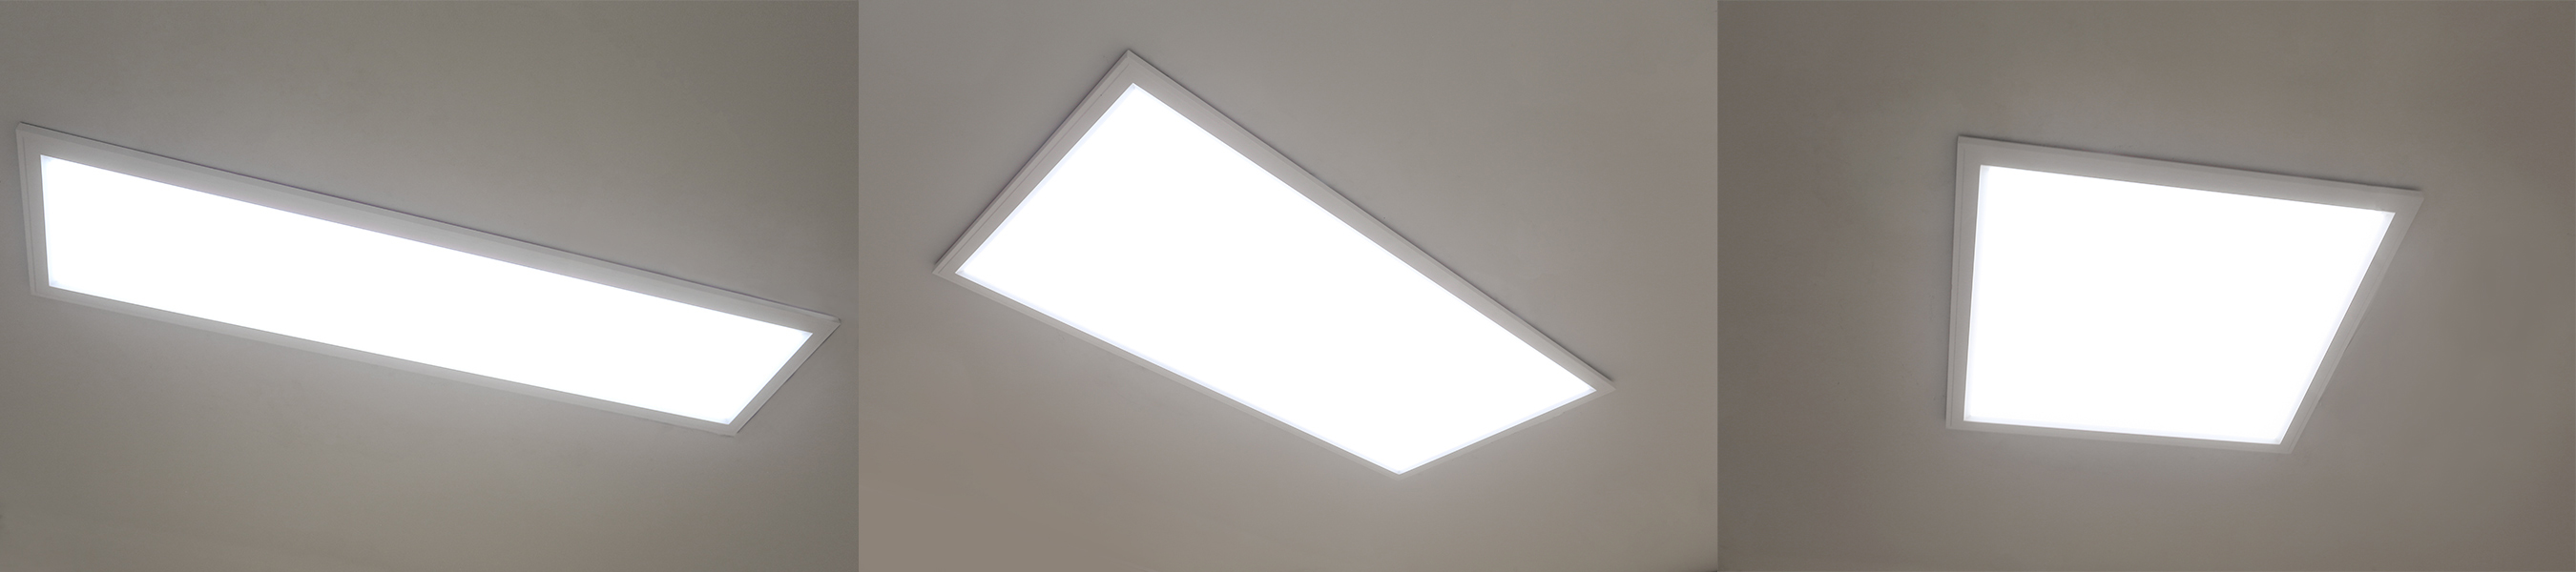 Slim dimmable led panel lights provide flawless illumination dimmable panel light group dailygadgetfo Choice Image